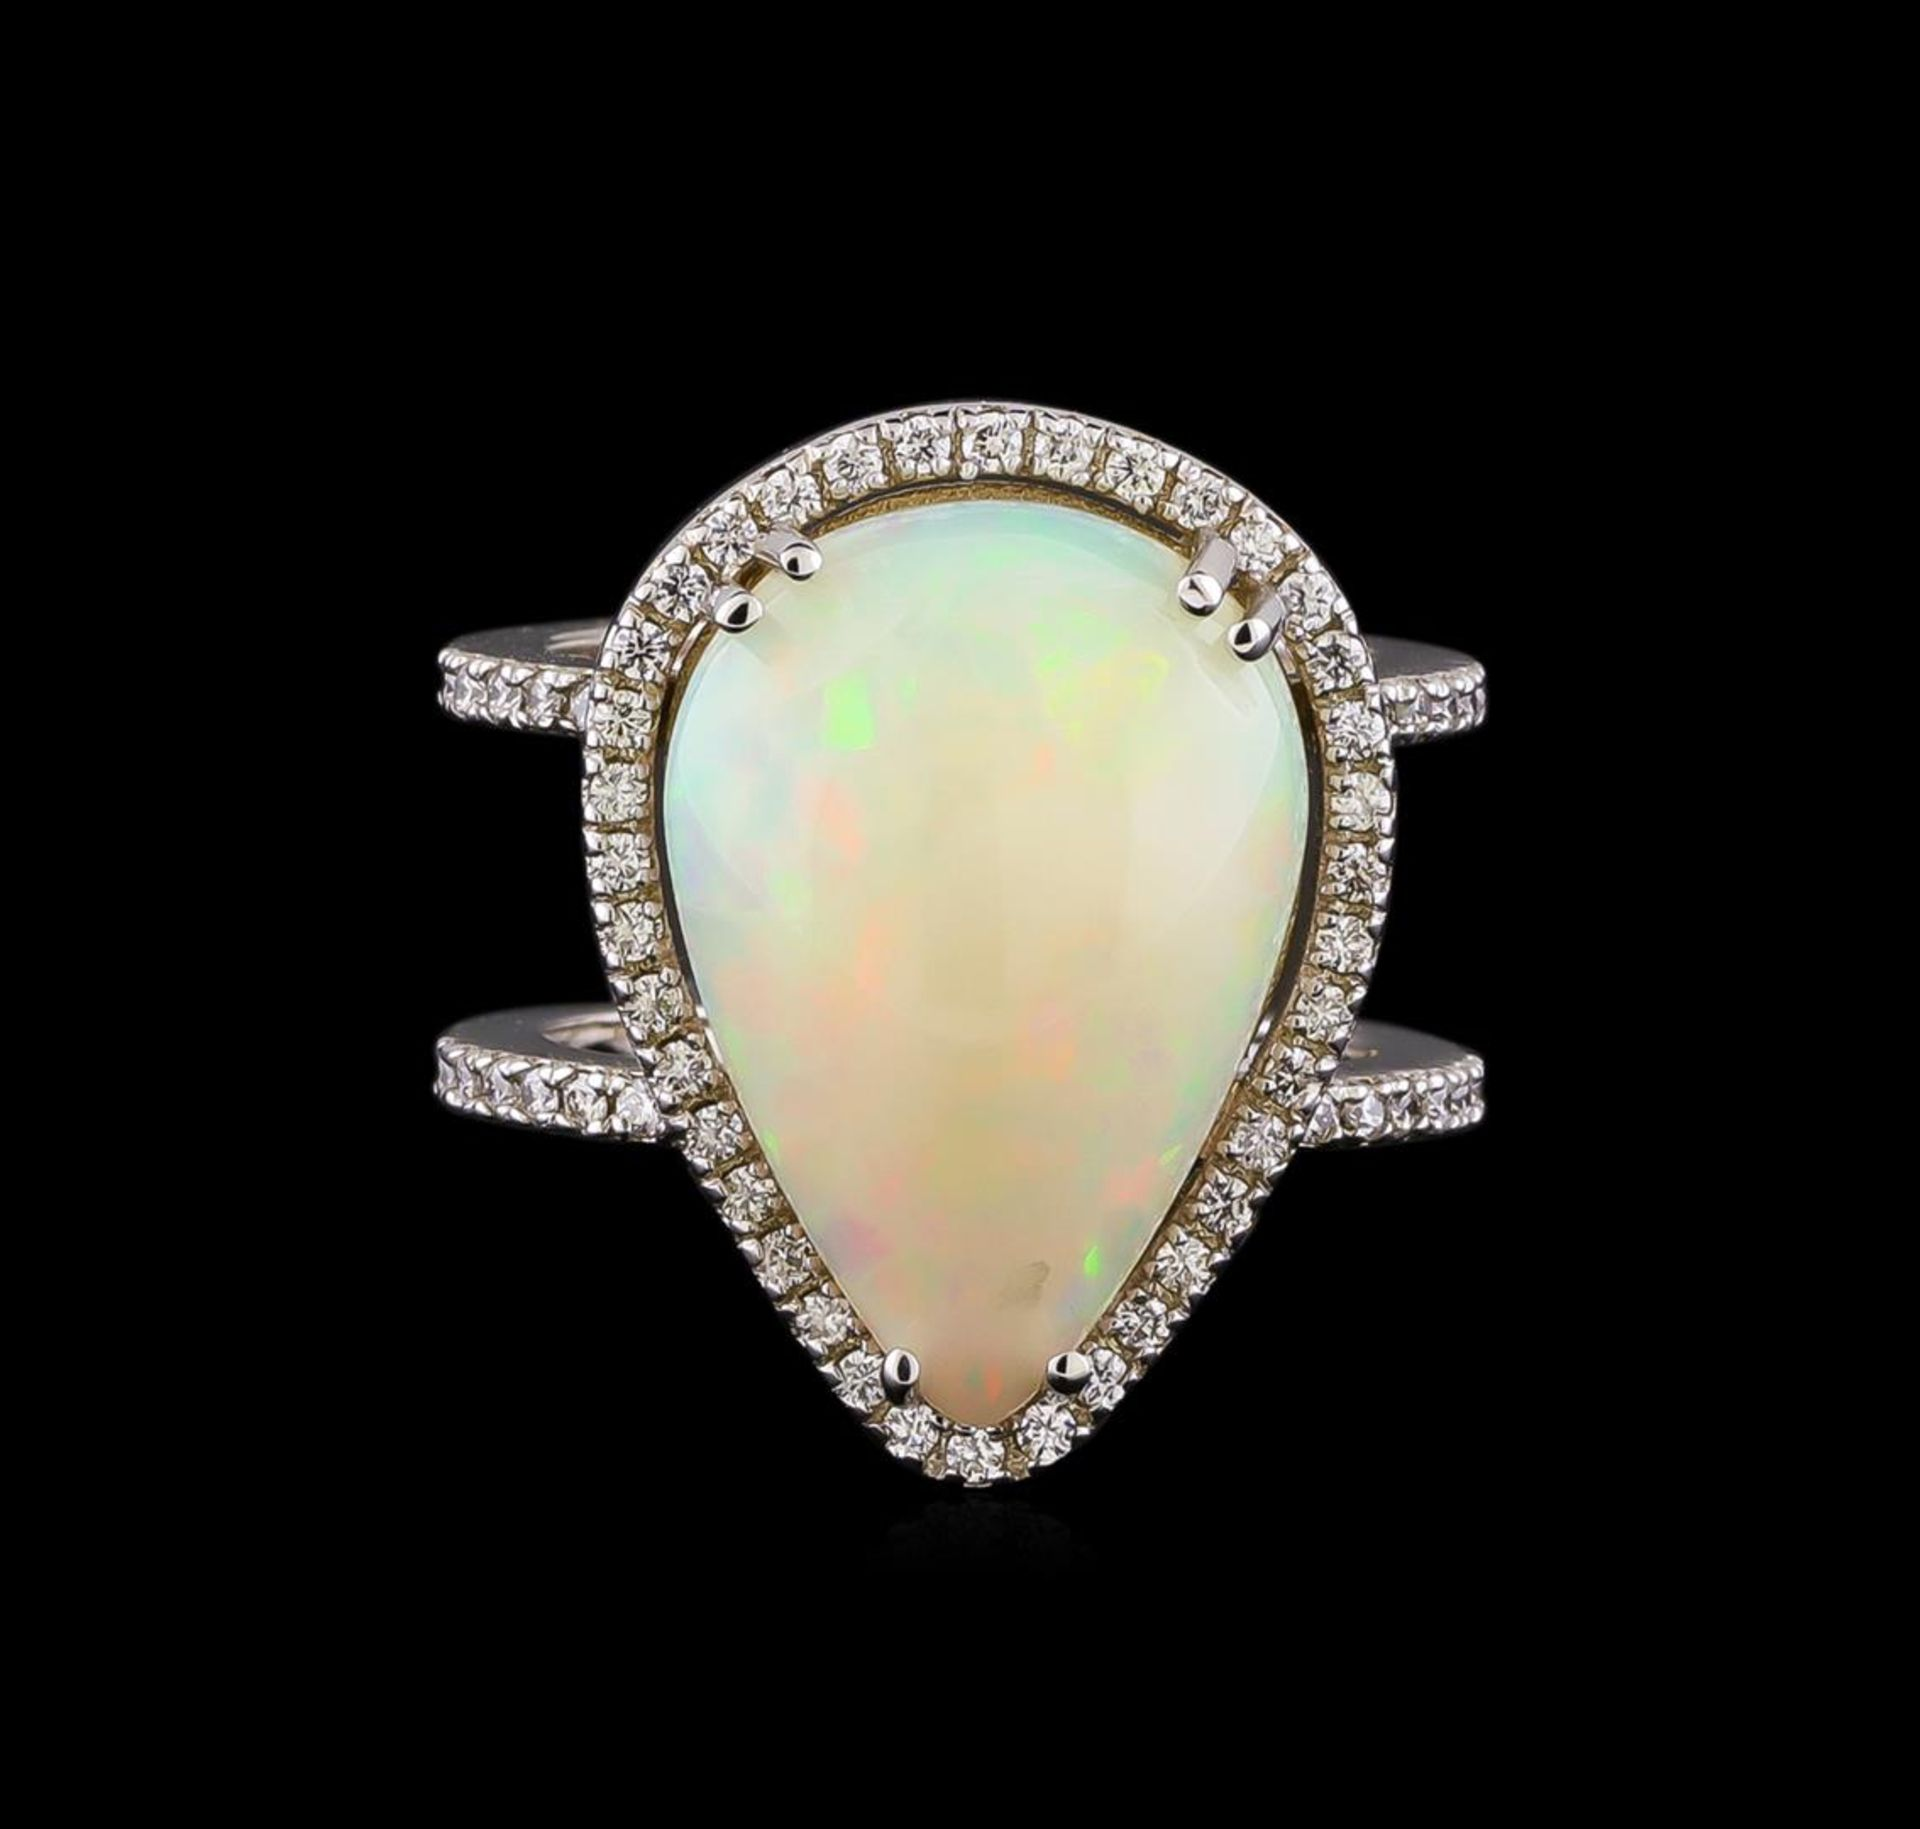 9.70 ctw Opal and Diamond Ring - 14KT White Gold - Image 2 of 5